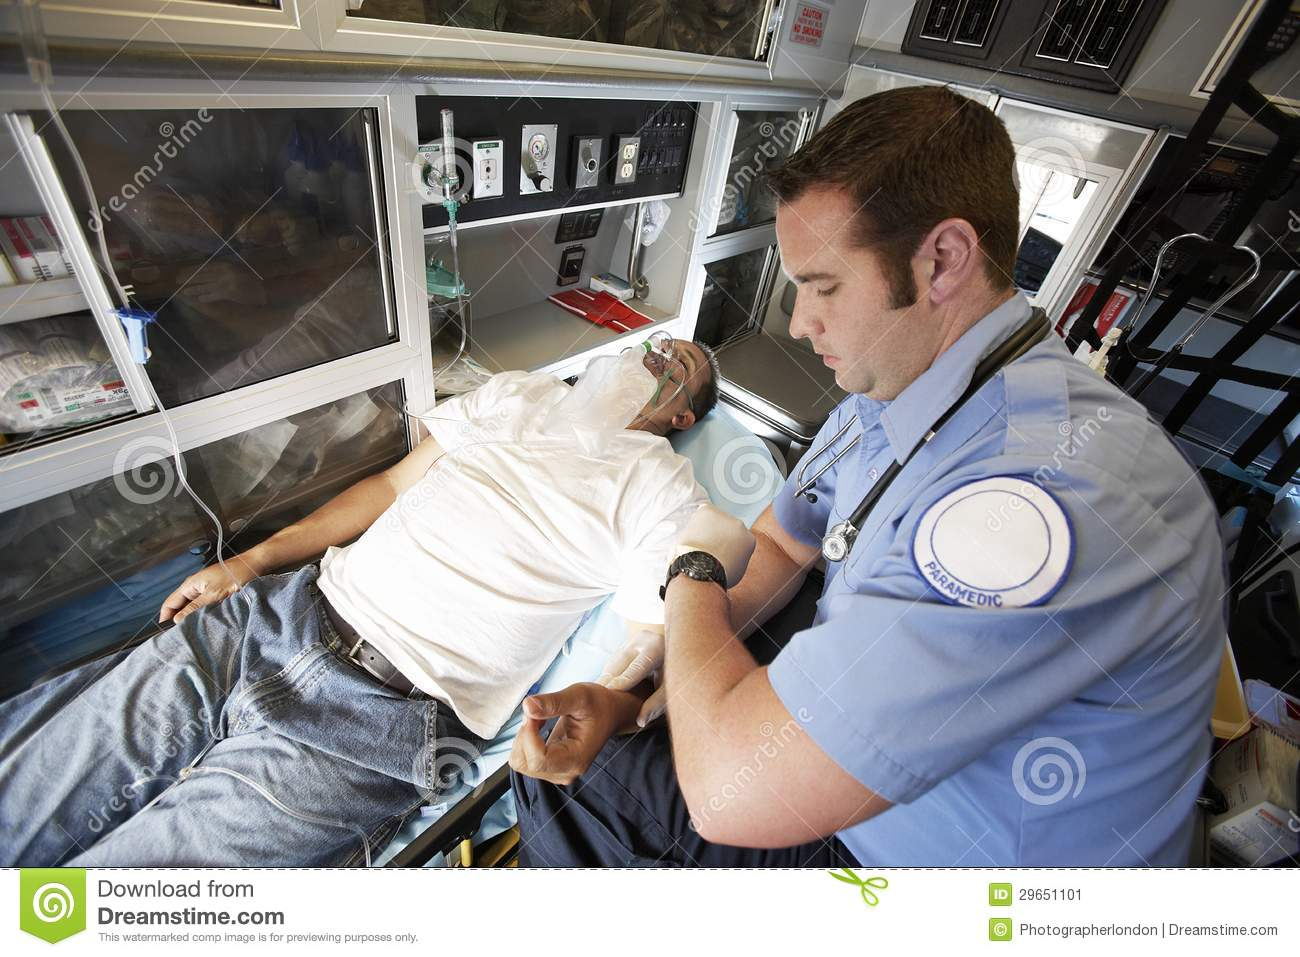 Emt Professional Taking Pulse Of A Man Stock Image   Image  29651101